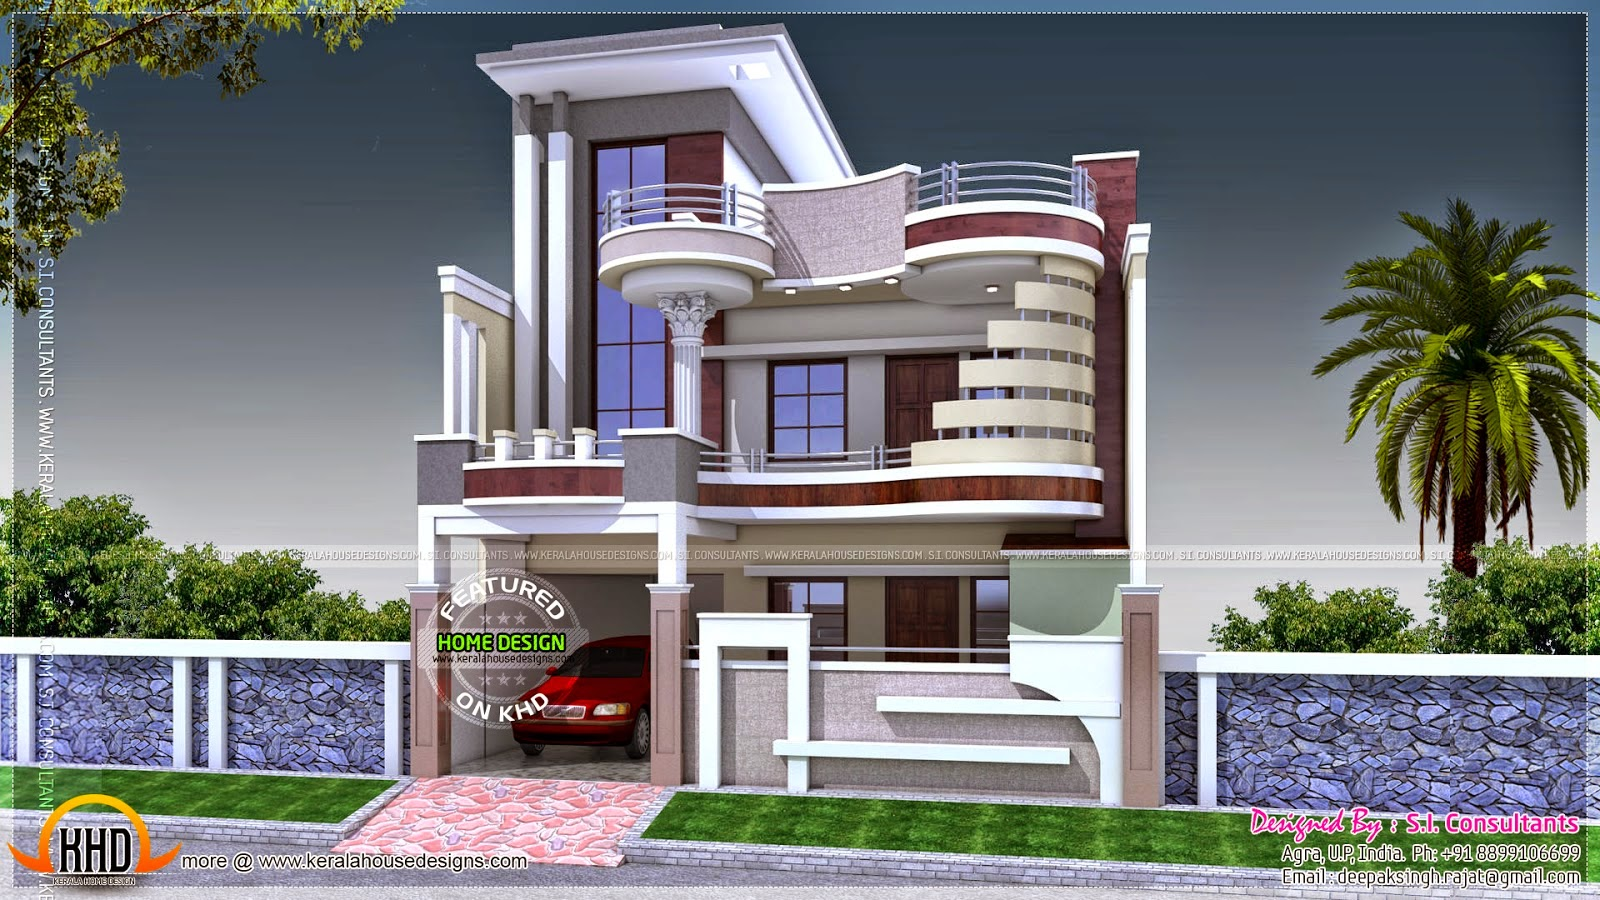 Tropicalizer indian house design Free indian home plans and designs